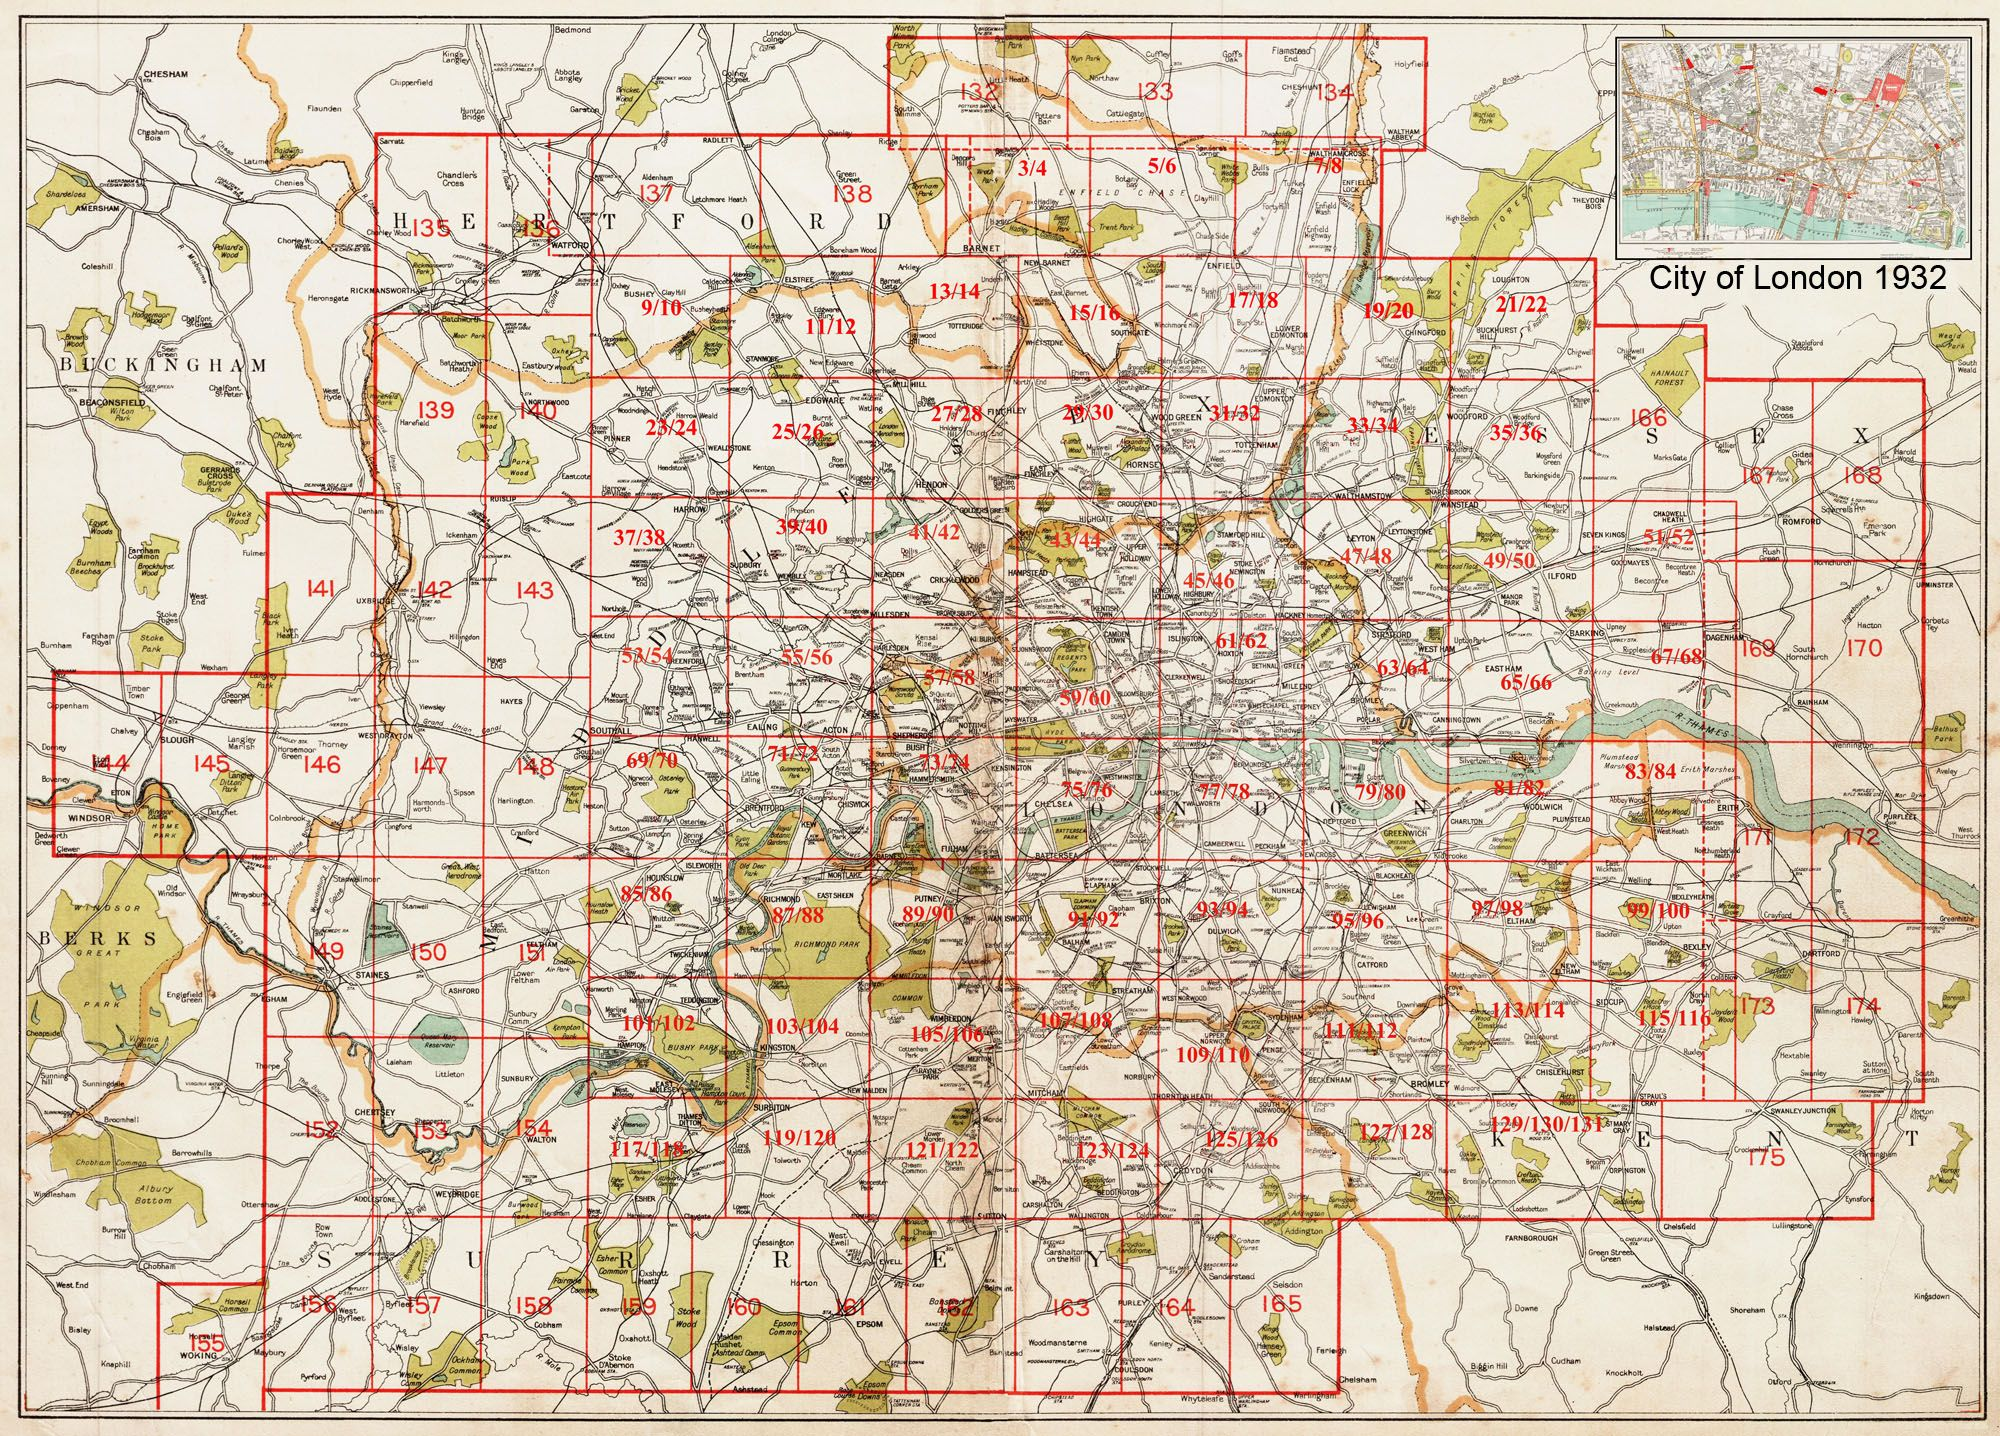 Old maps of london and greater london in 1932 as instant downloads old maps of london and greater london in 1932 as instant downloads and large format prints publicscrutiny Image collections